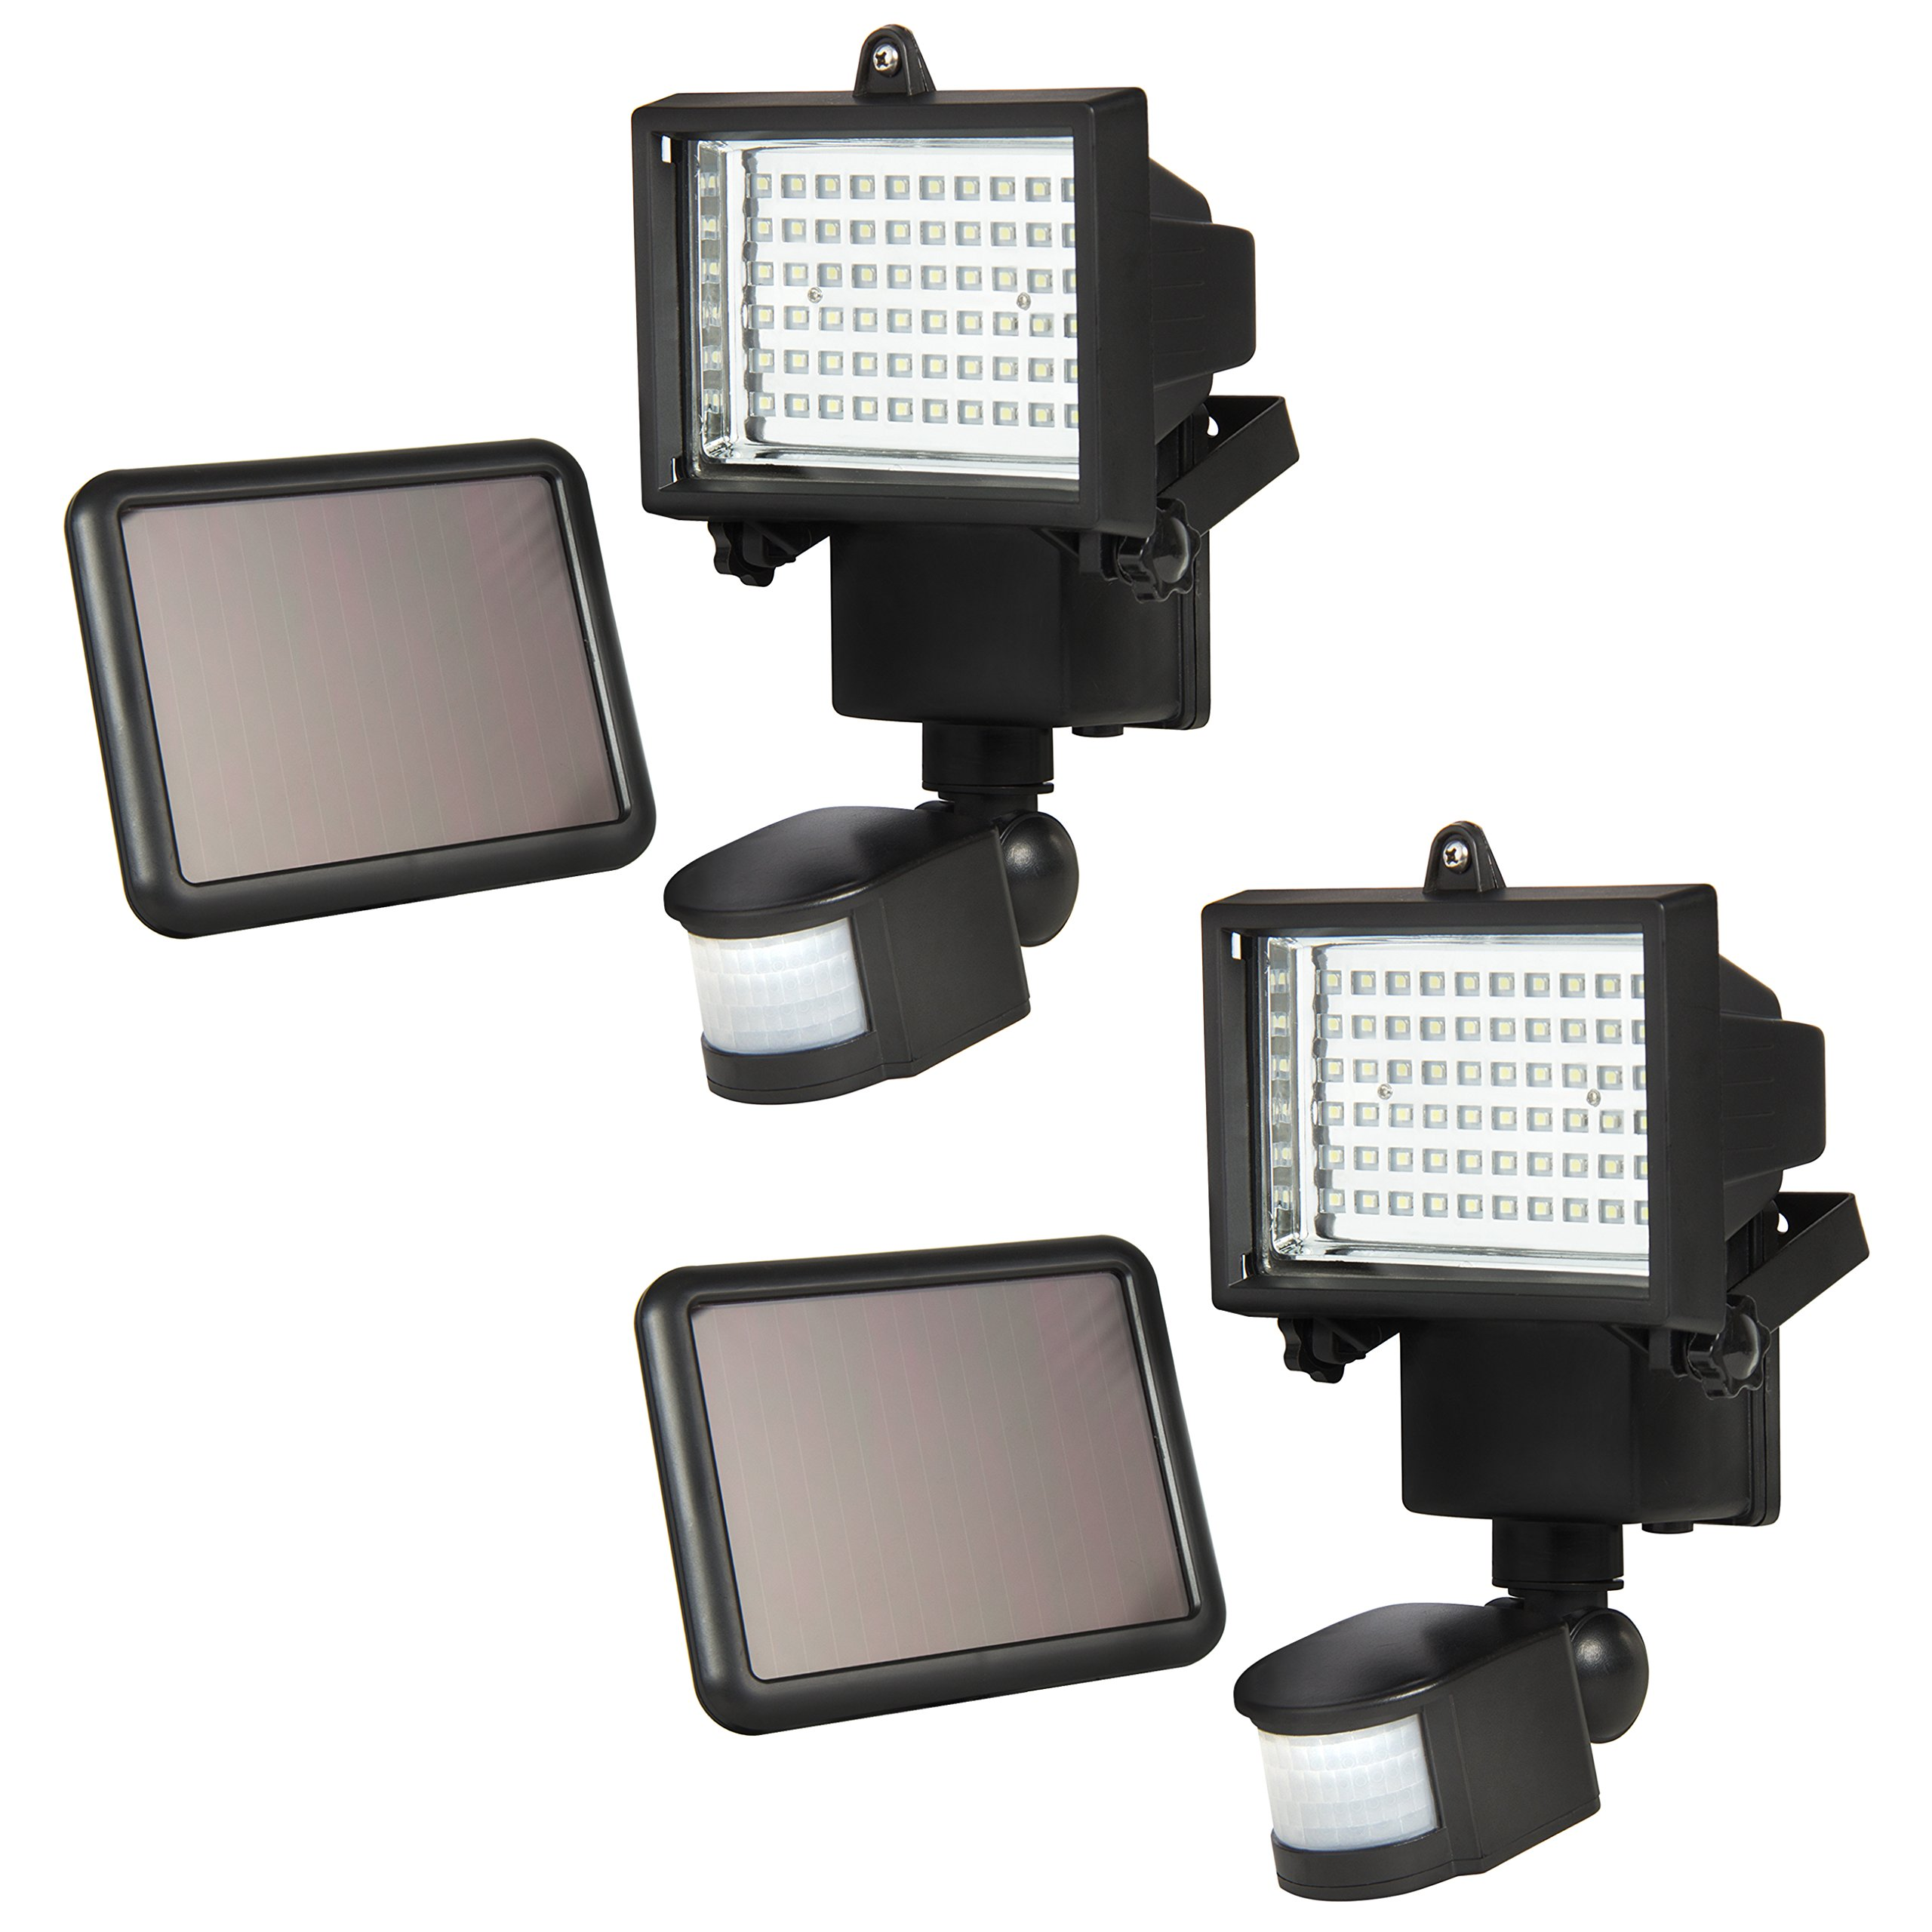 Best Choice Products 2-Pack Outdoor Solar Power Flood Light w/ 60 LED Lights, Motion Sensor, Timer - Black